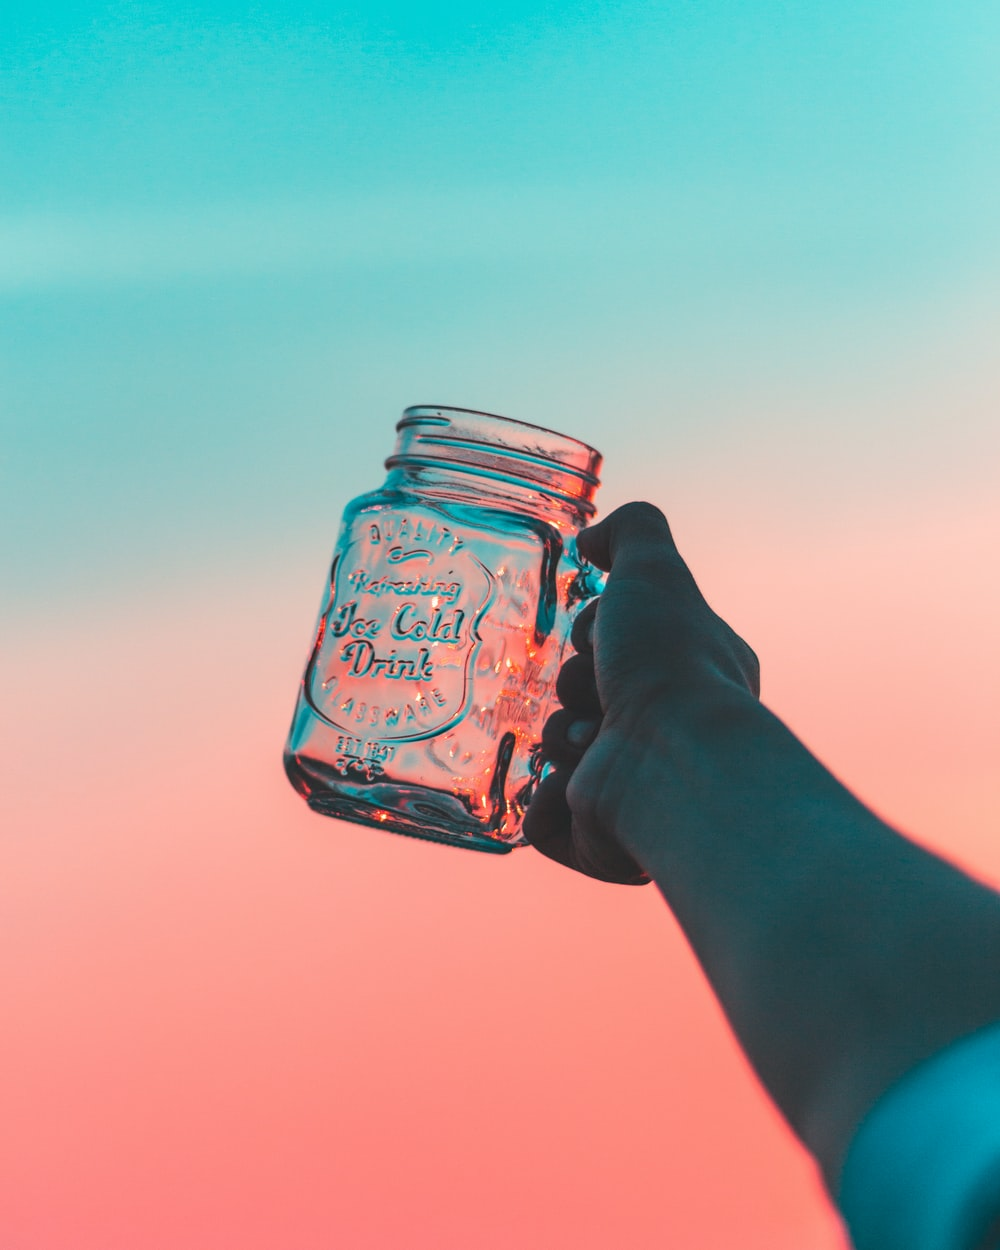 Best 100+ Pastel Pictures | Download Free Images on Unsplash